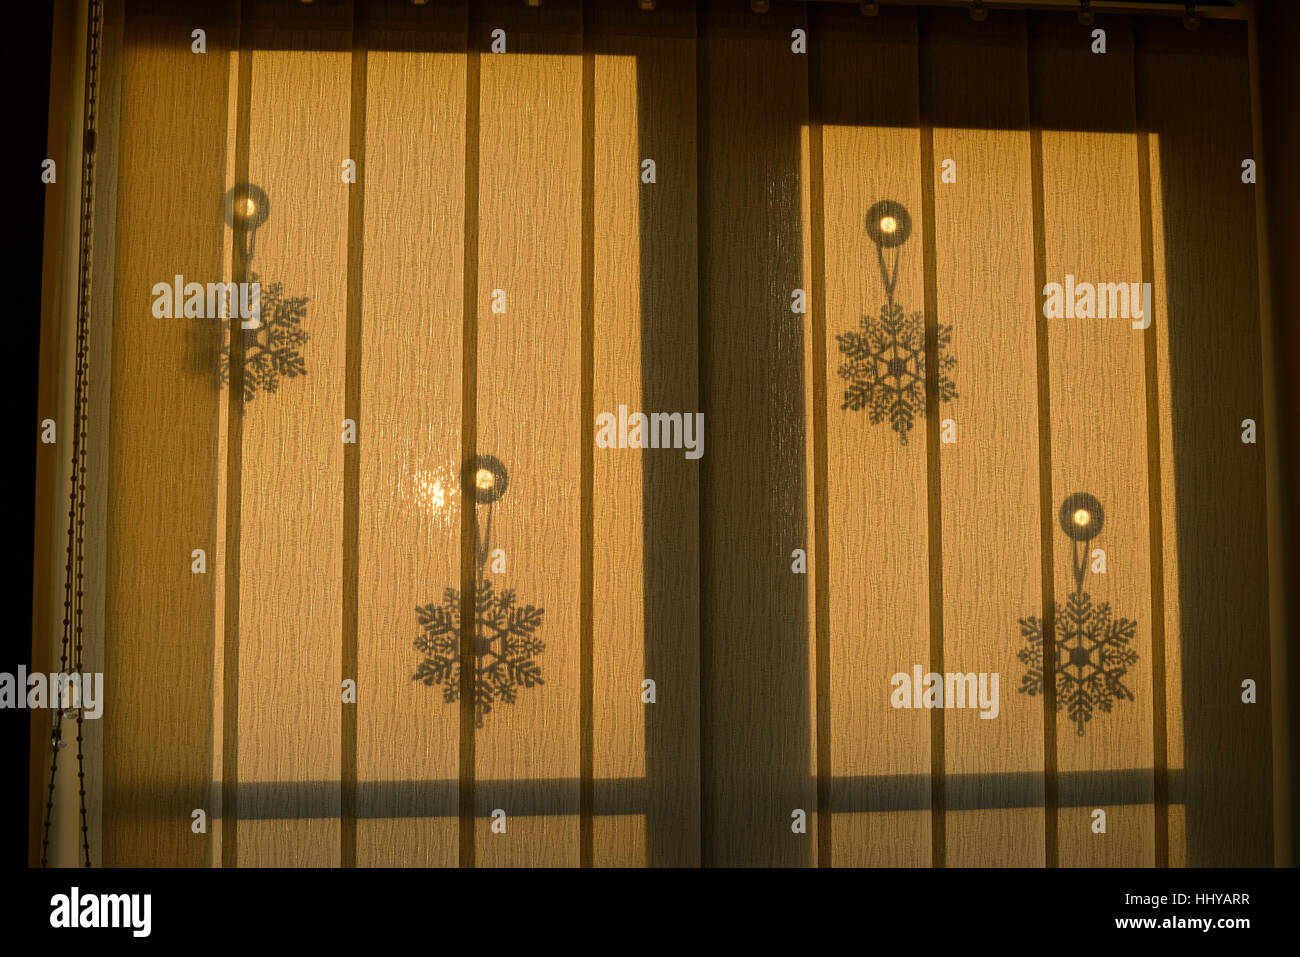 Vertical Blinds At A Window With Christmas Decorations Stock Photo Alamy